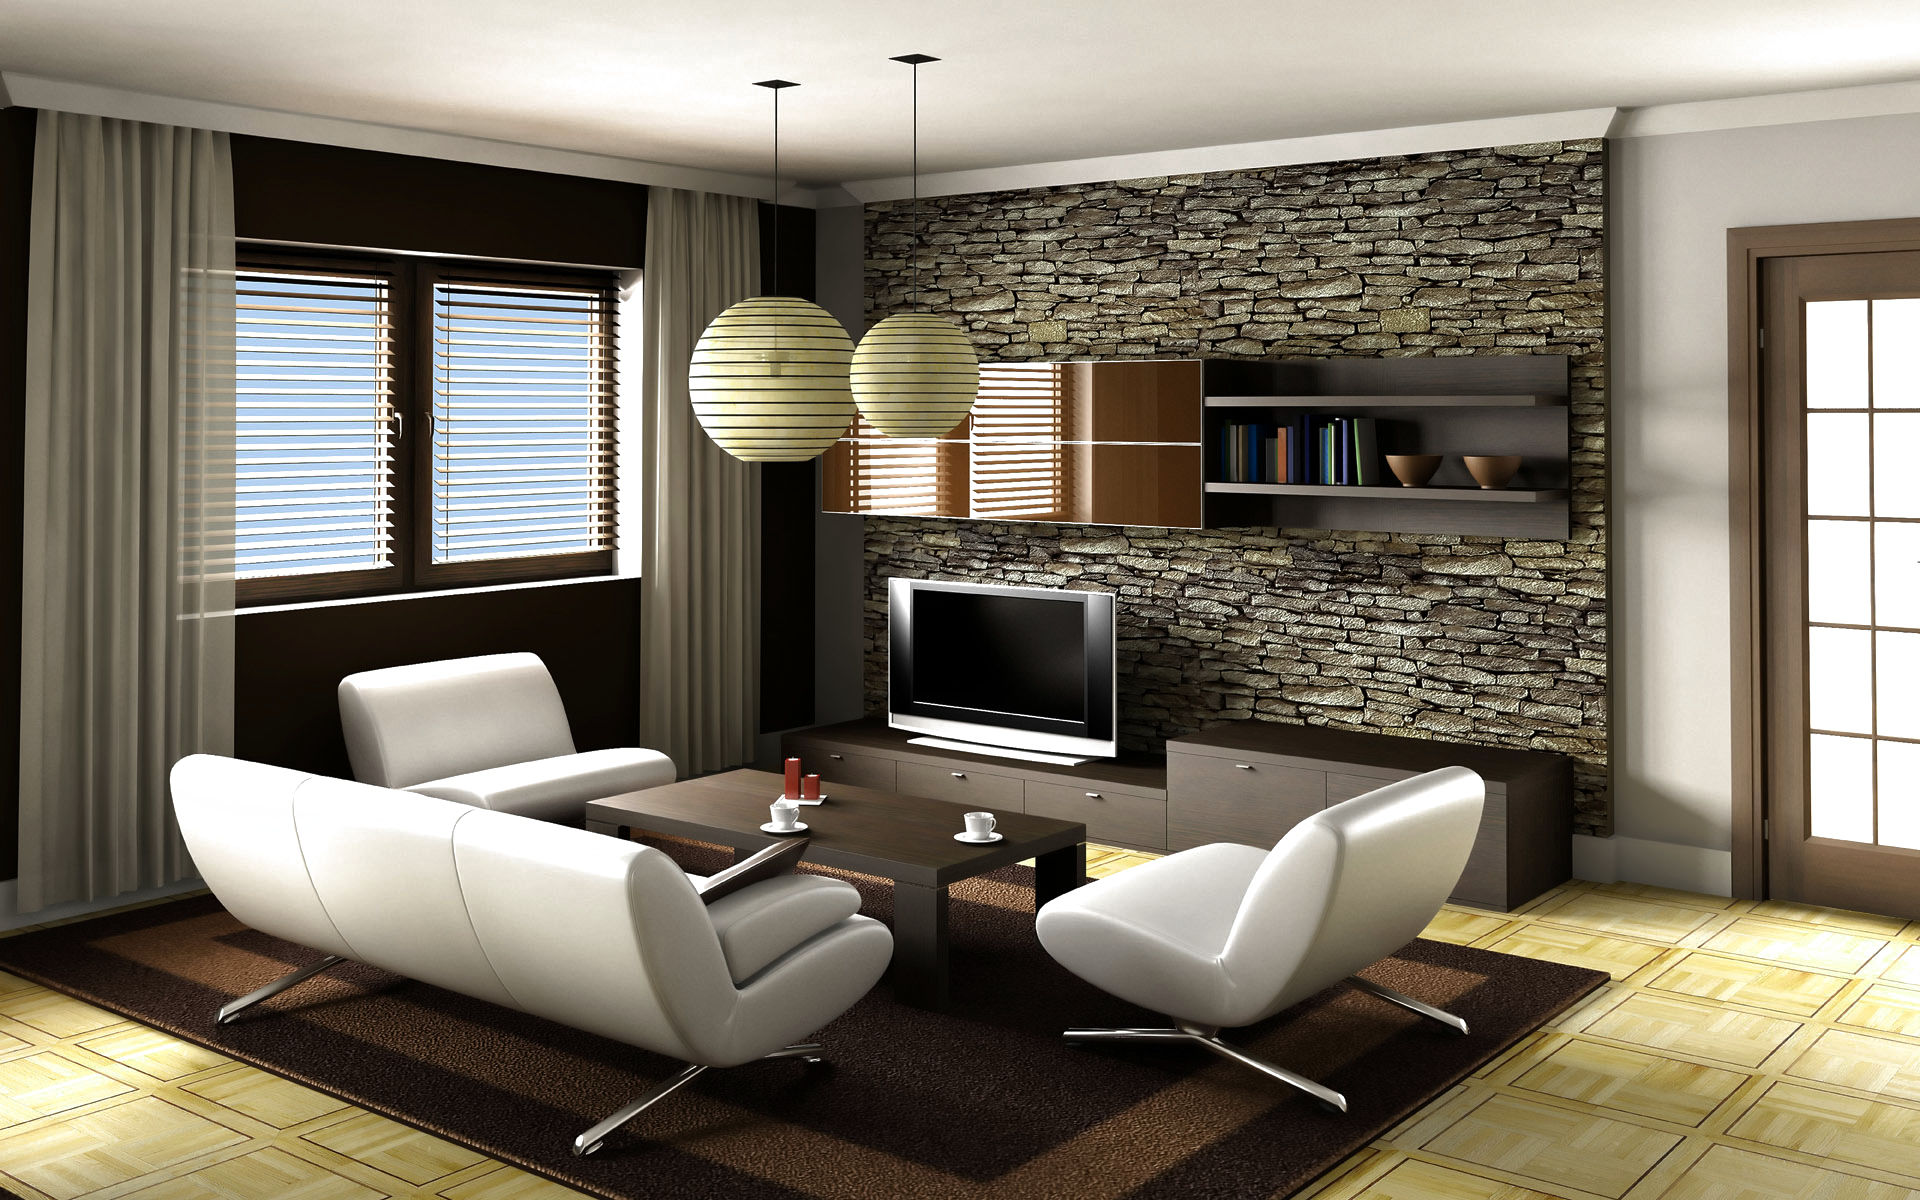 16 modern living room furniture ideas design hgnv com for Living room furniture designs